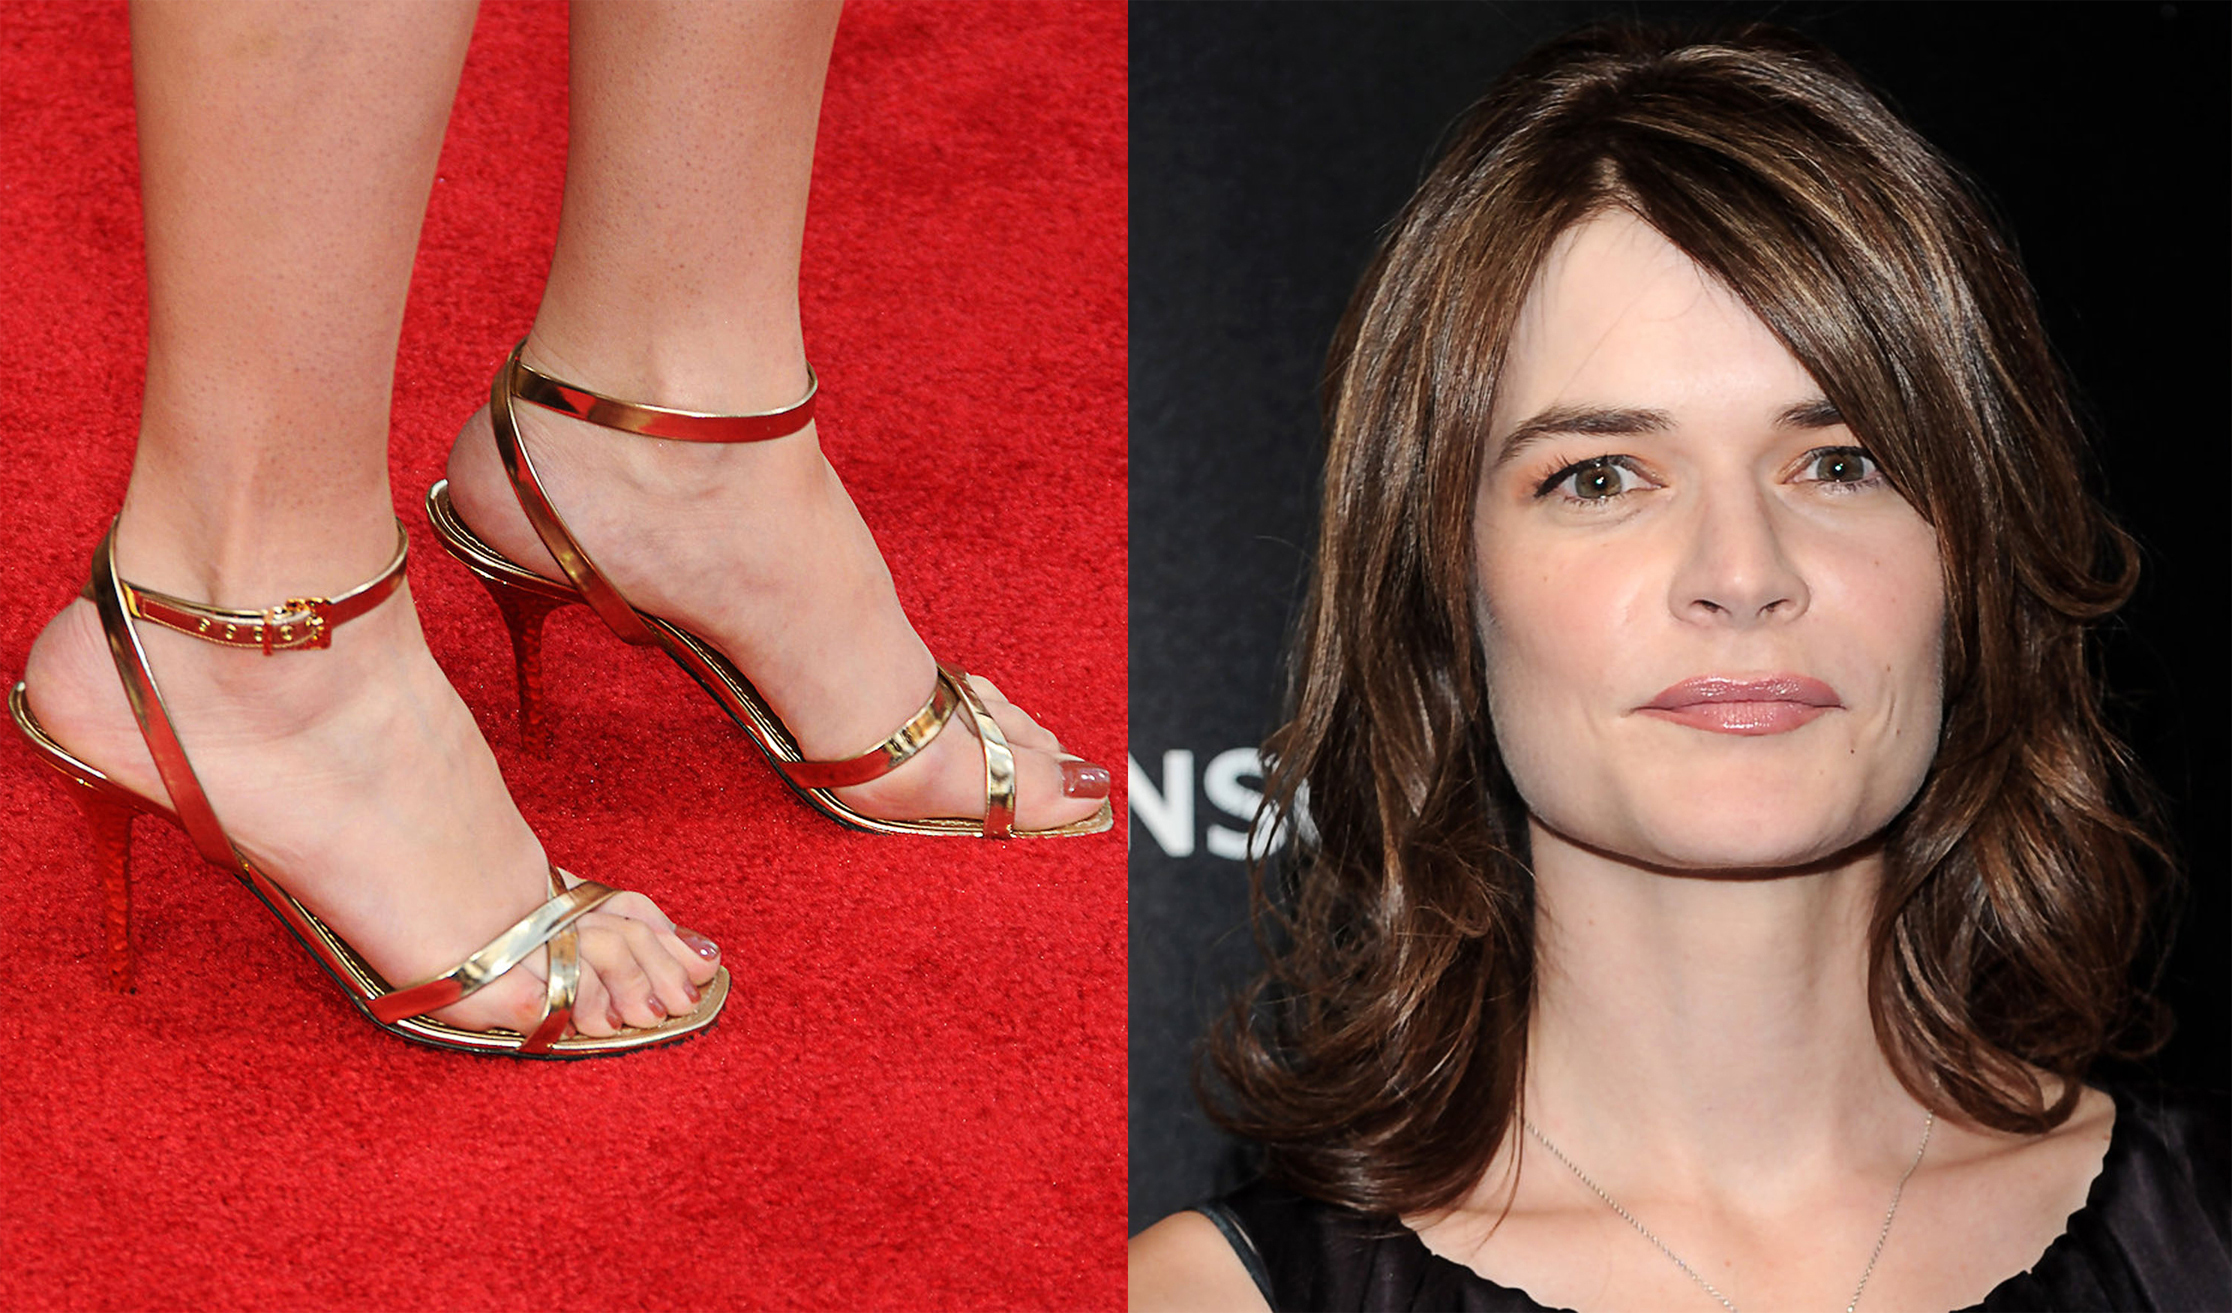 Betsy brandt hot pictures Chi Alpha Nu Picture Page - m